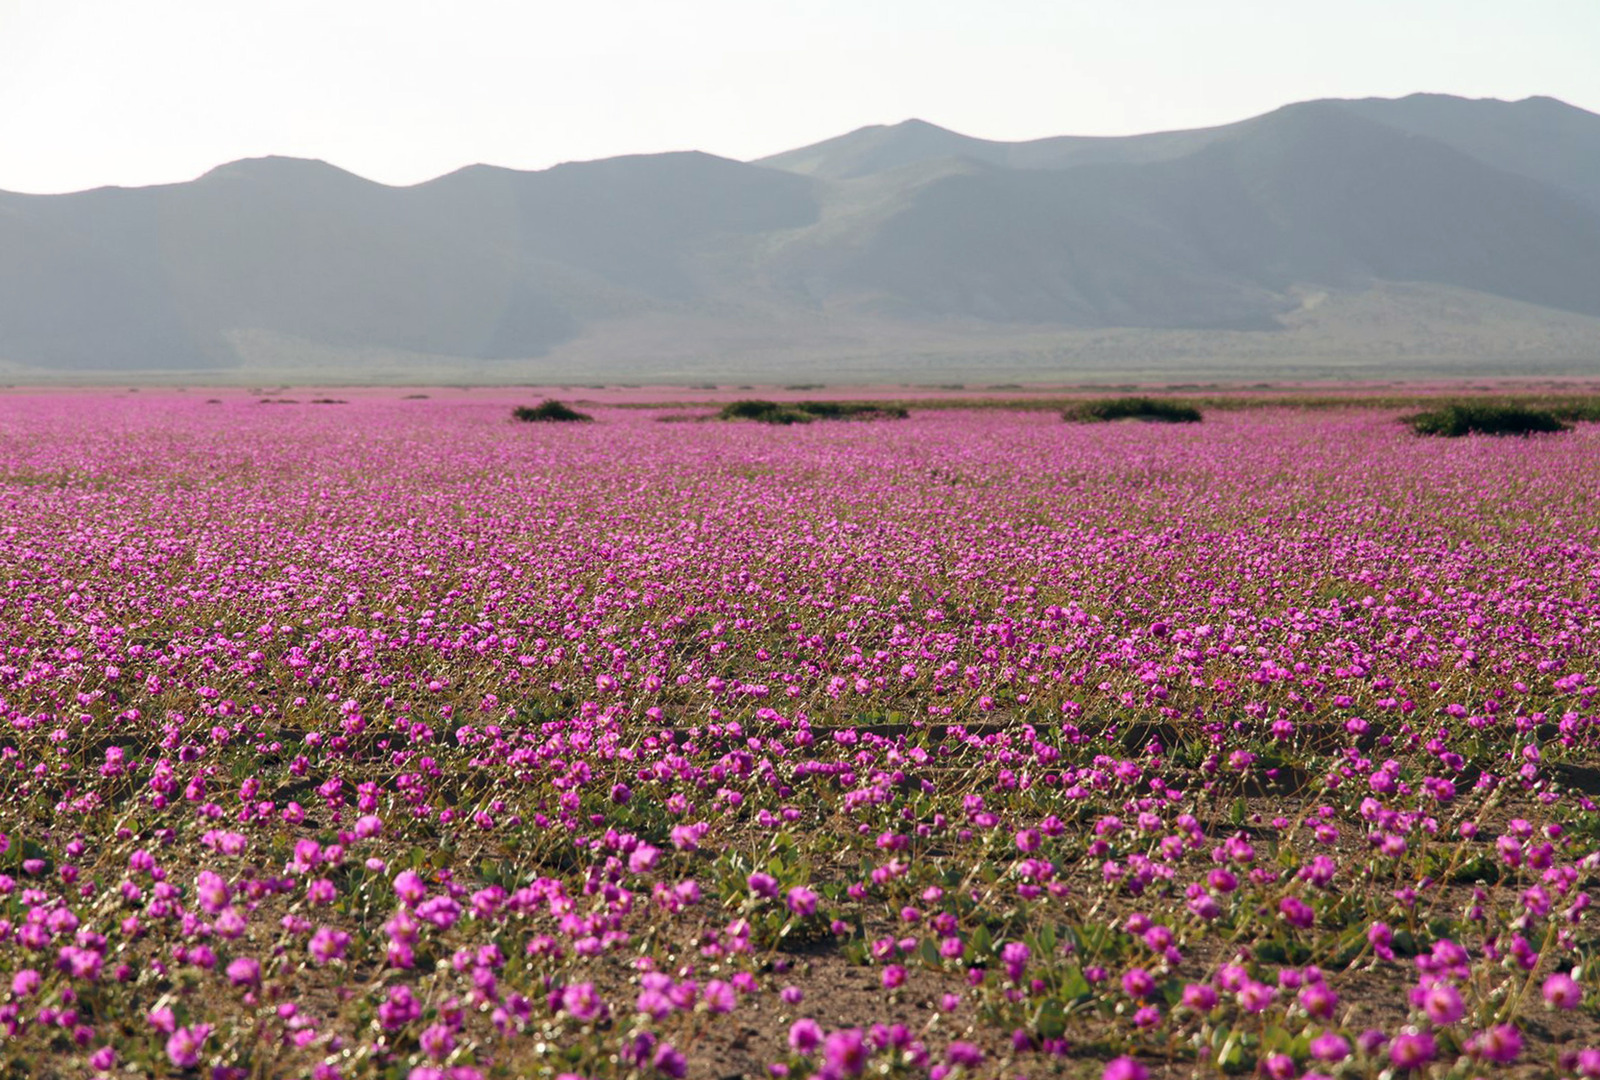 CHILE-DESERT-BLOOMING